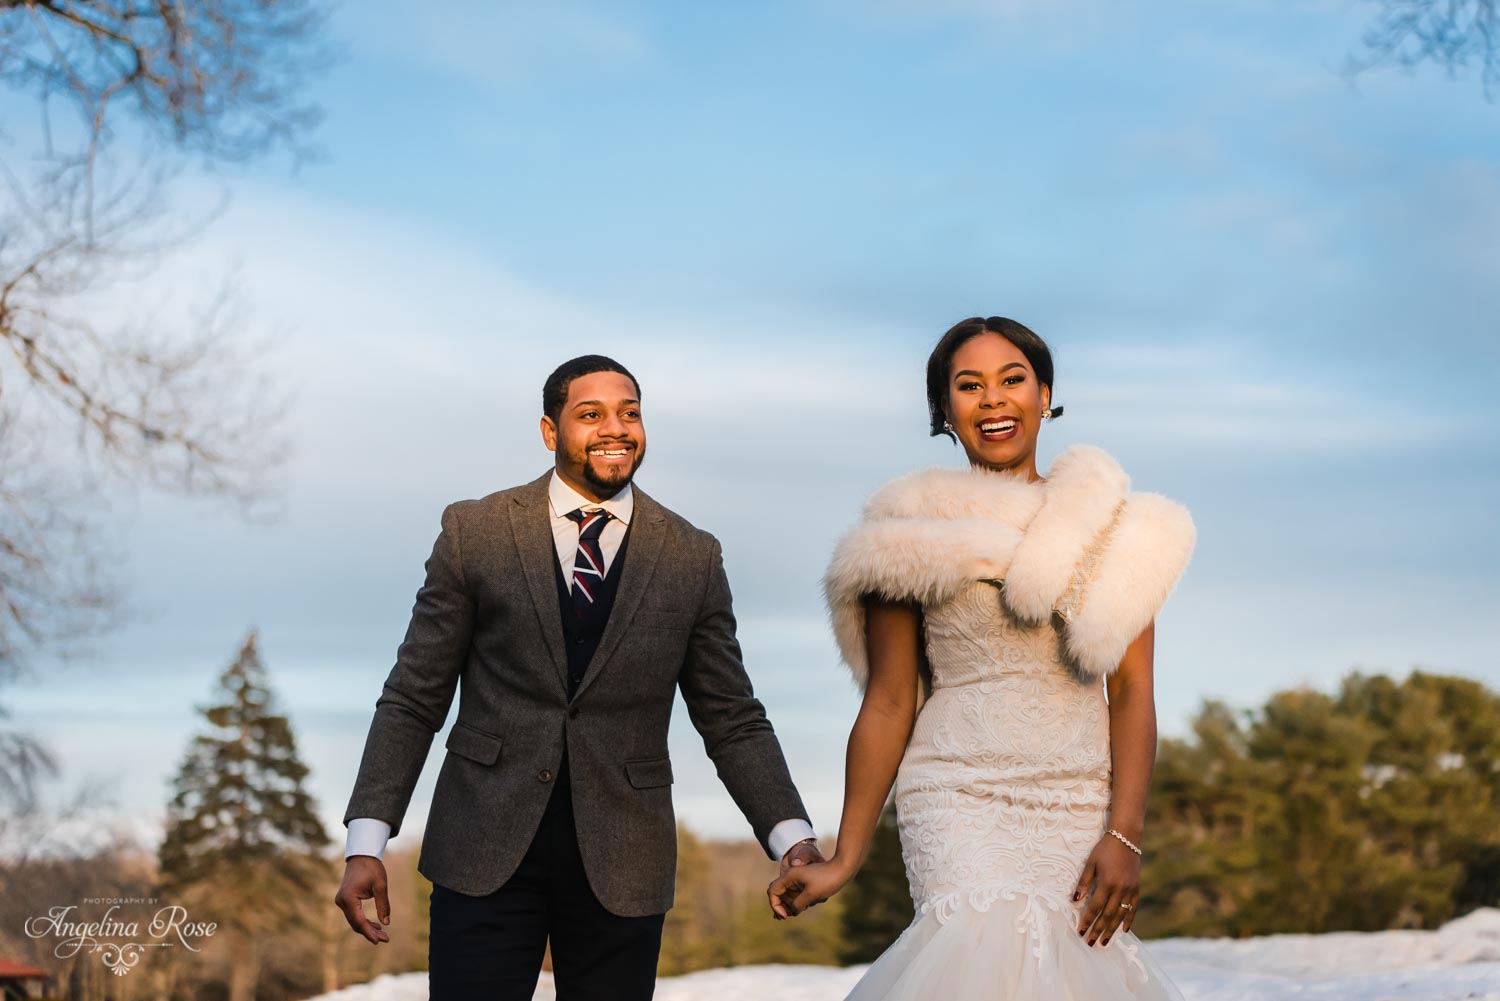 Stylish winter bride and groom attire